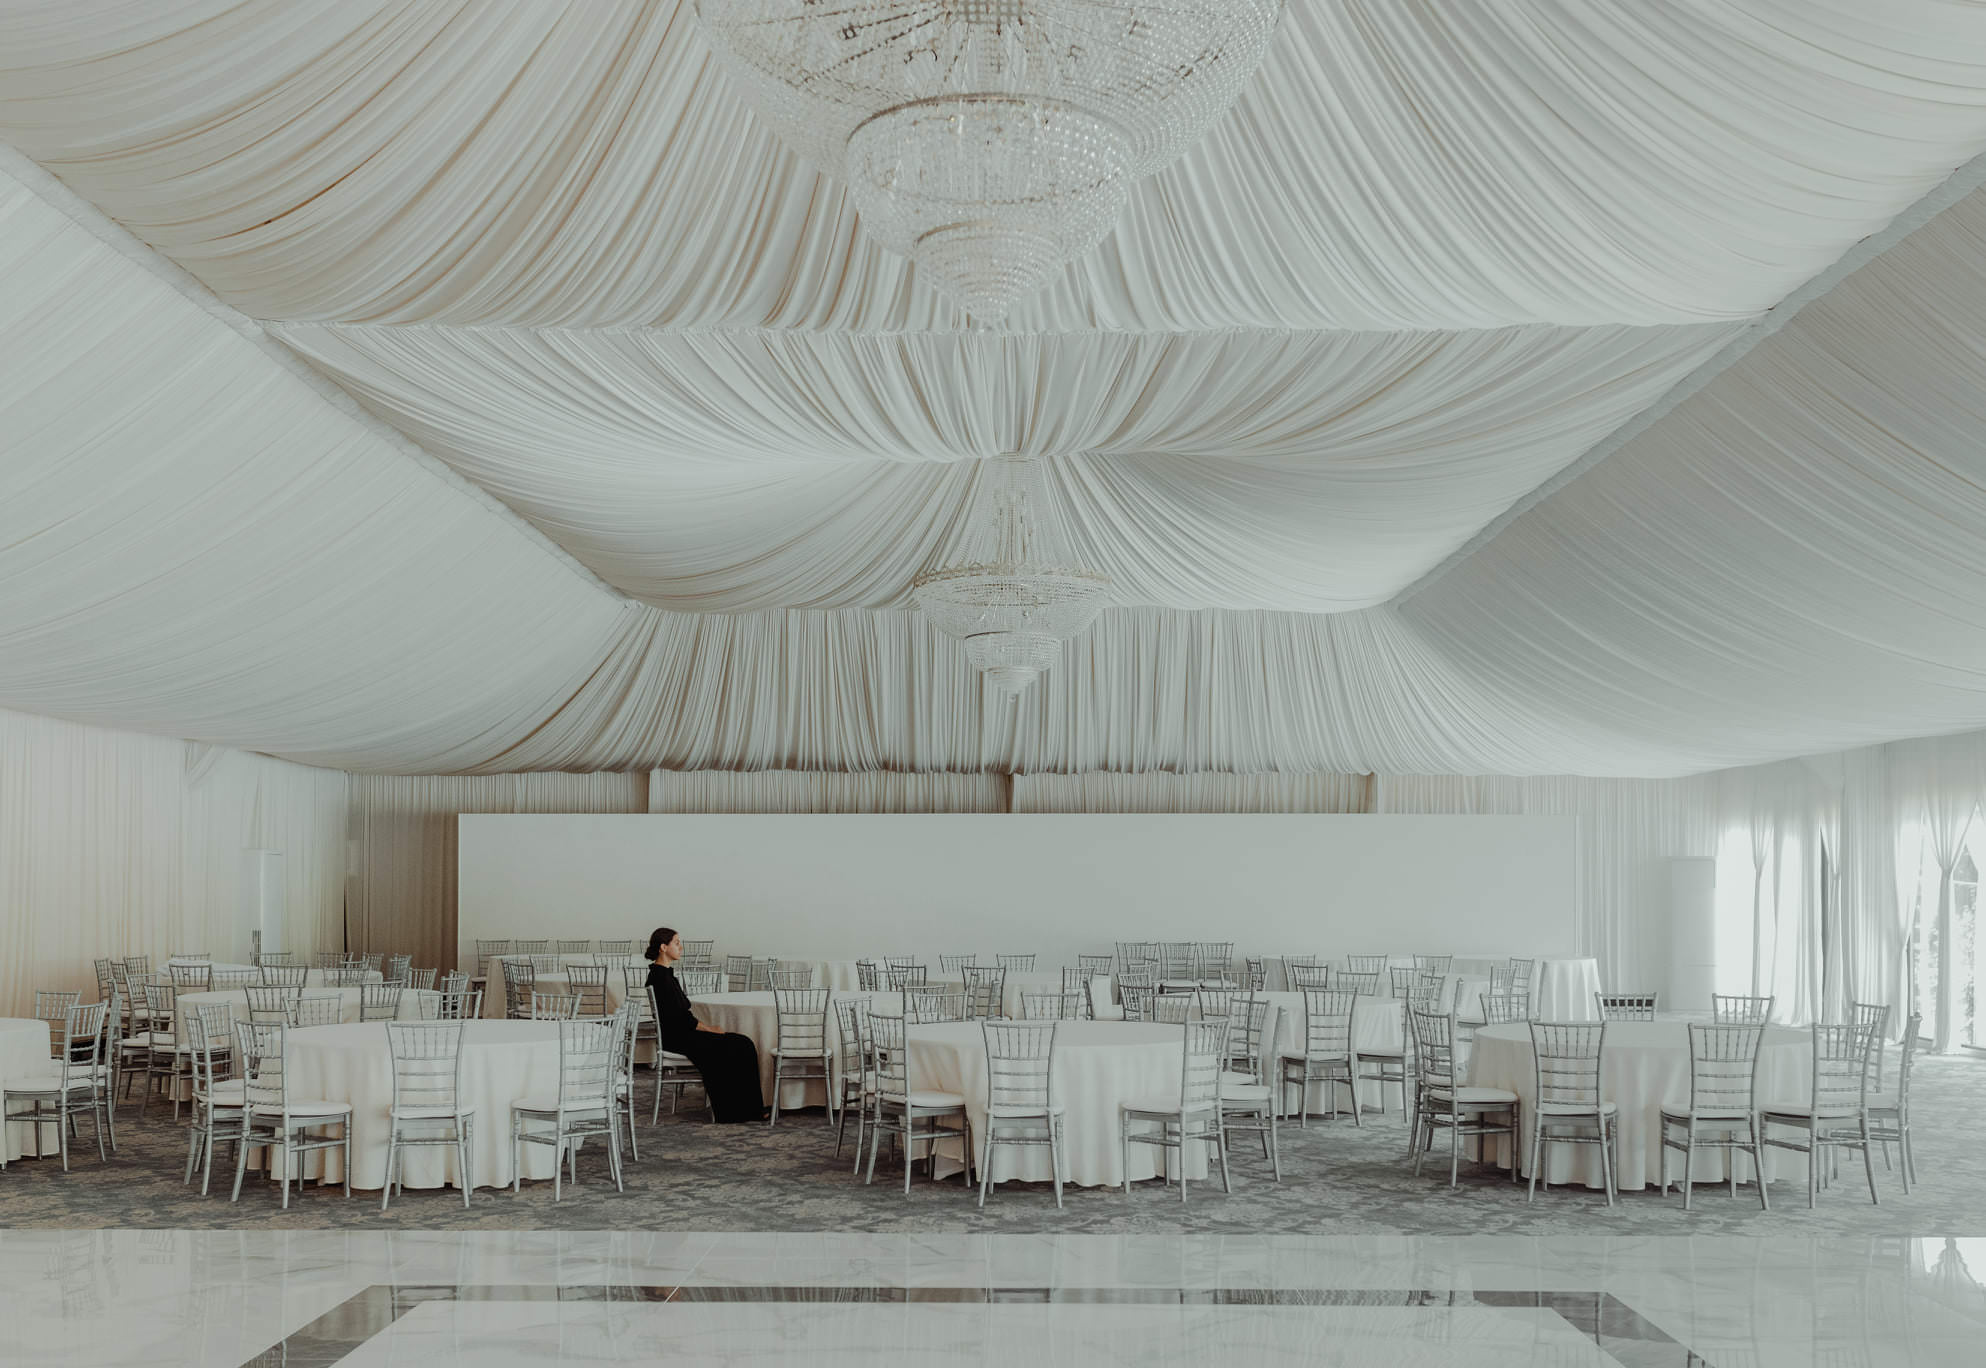 a woman sits alone in an empty wedding venue